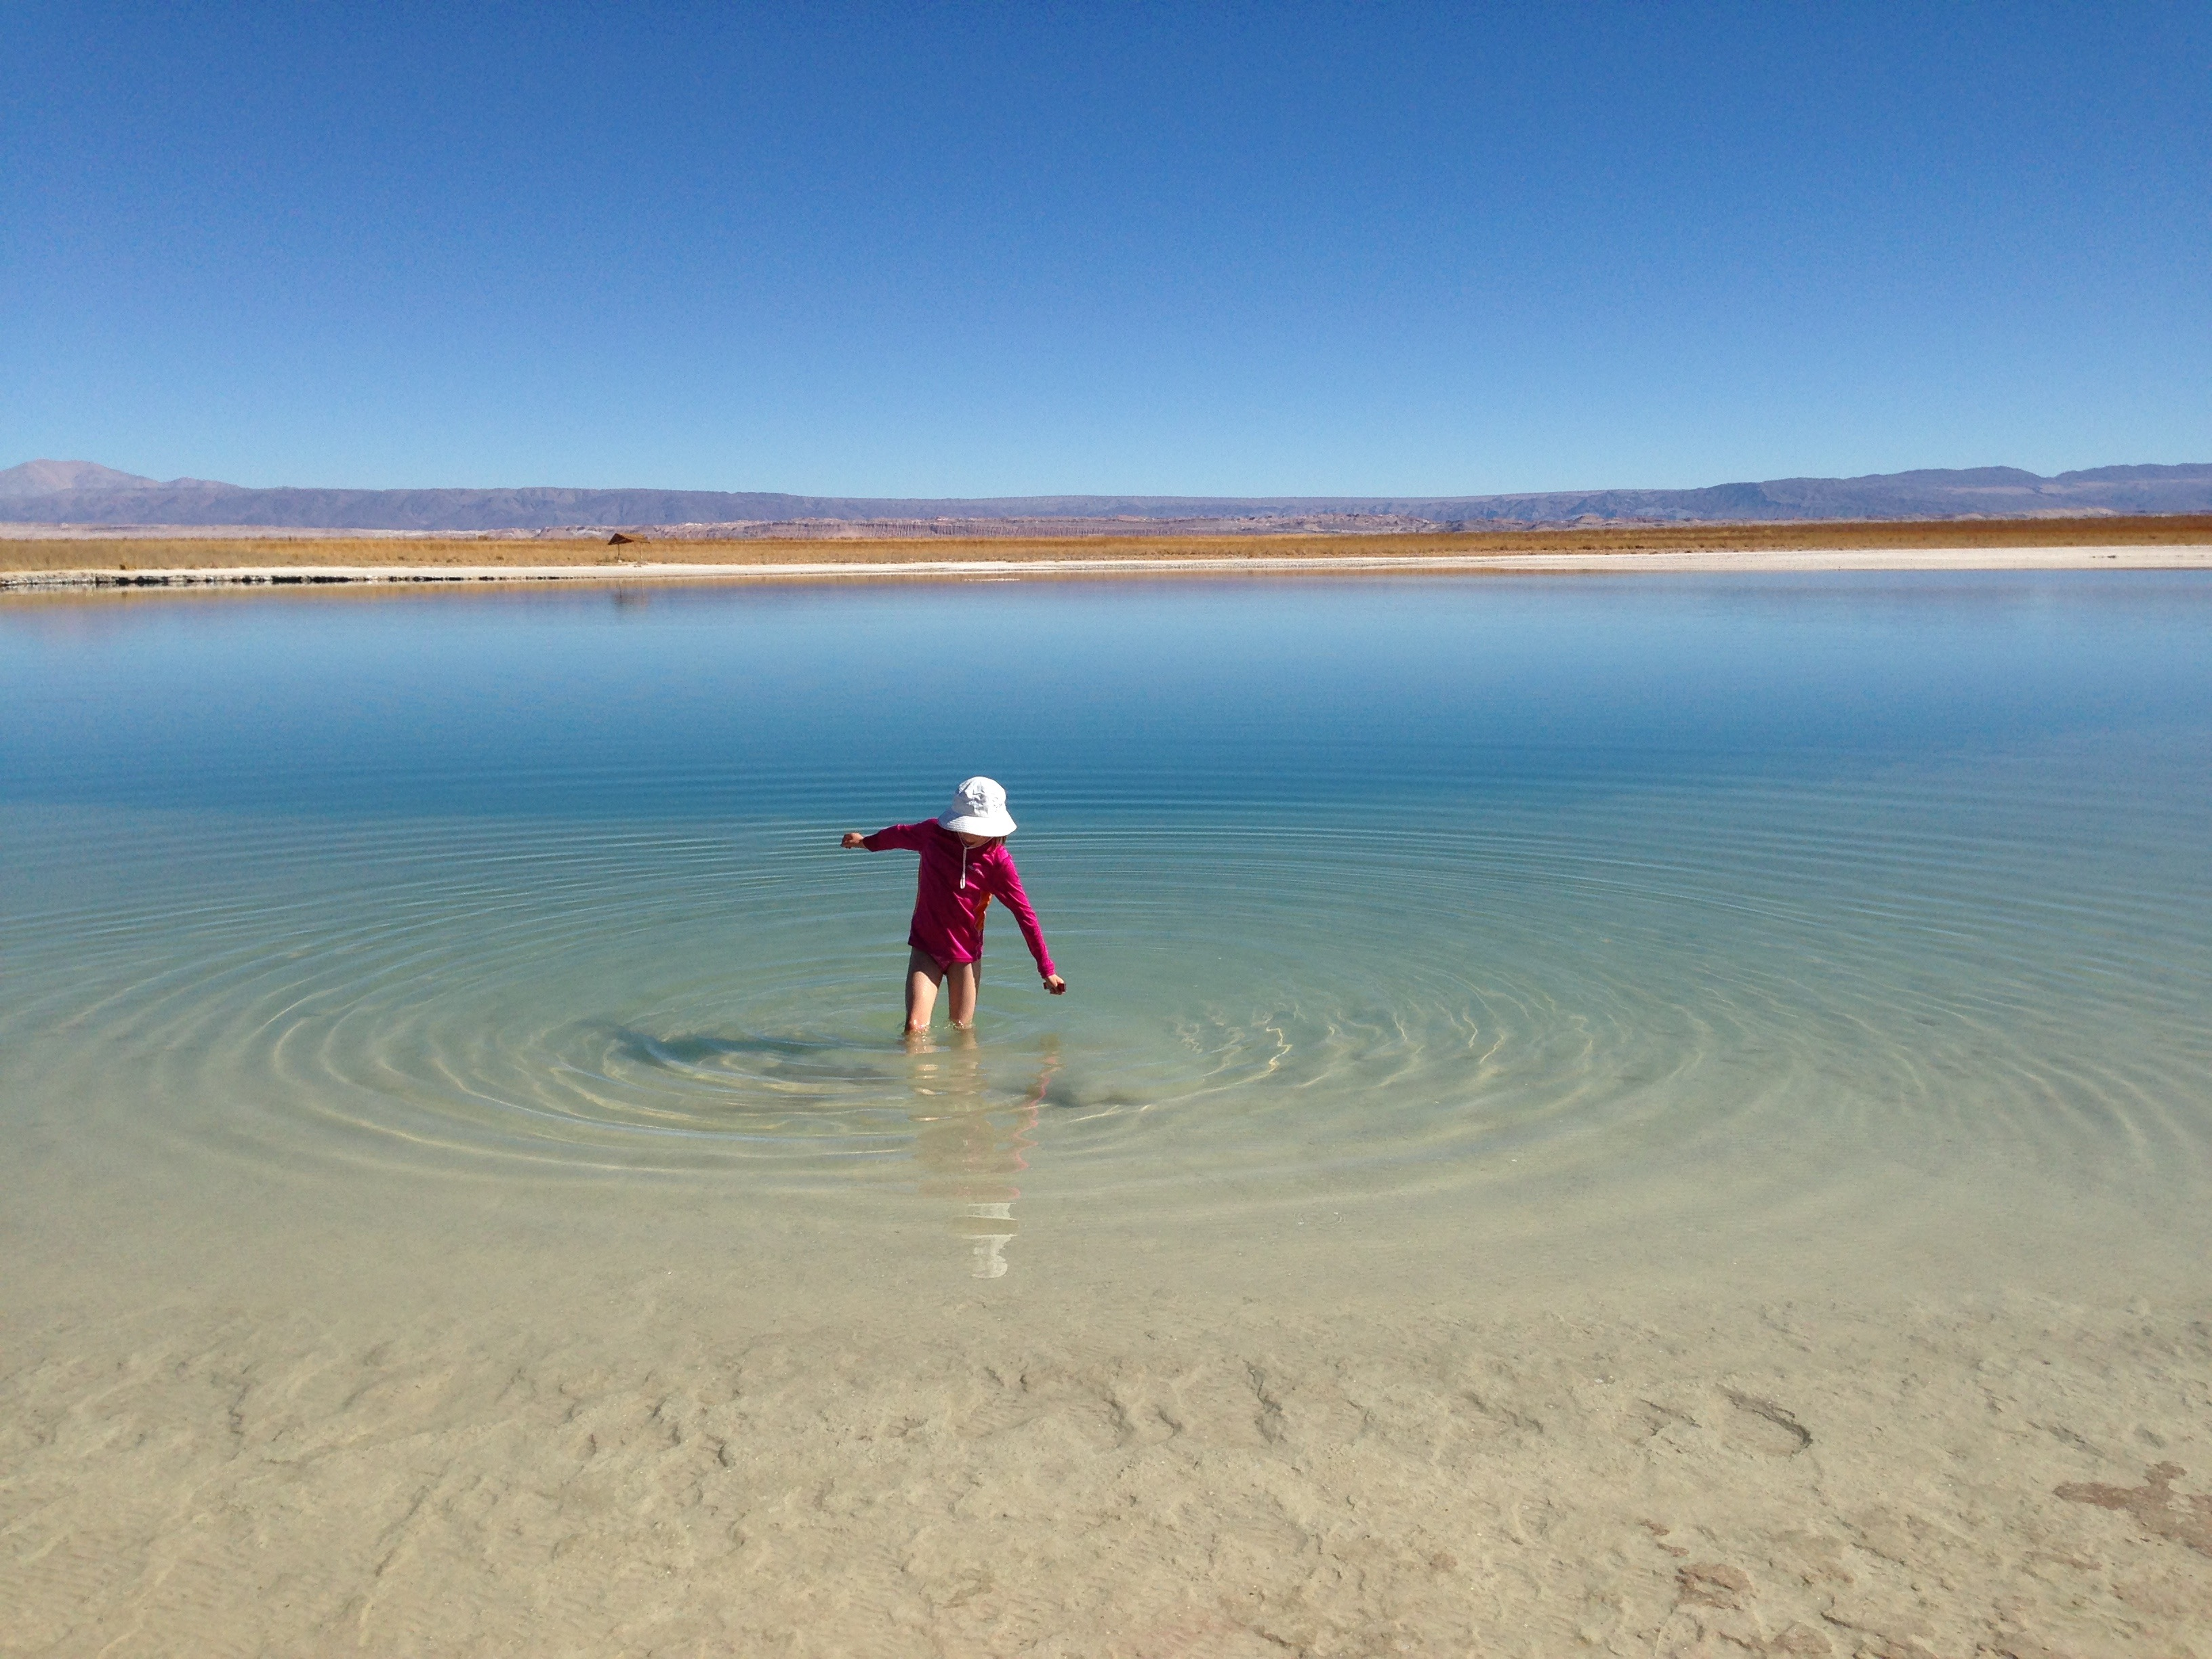 Wading in the salty waters of <em>Laguna Cejar</em>.